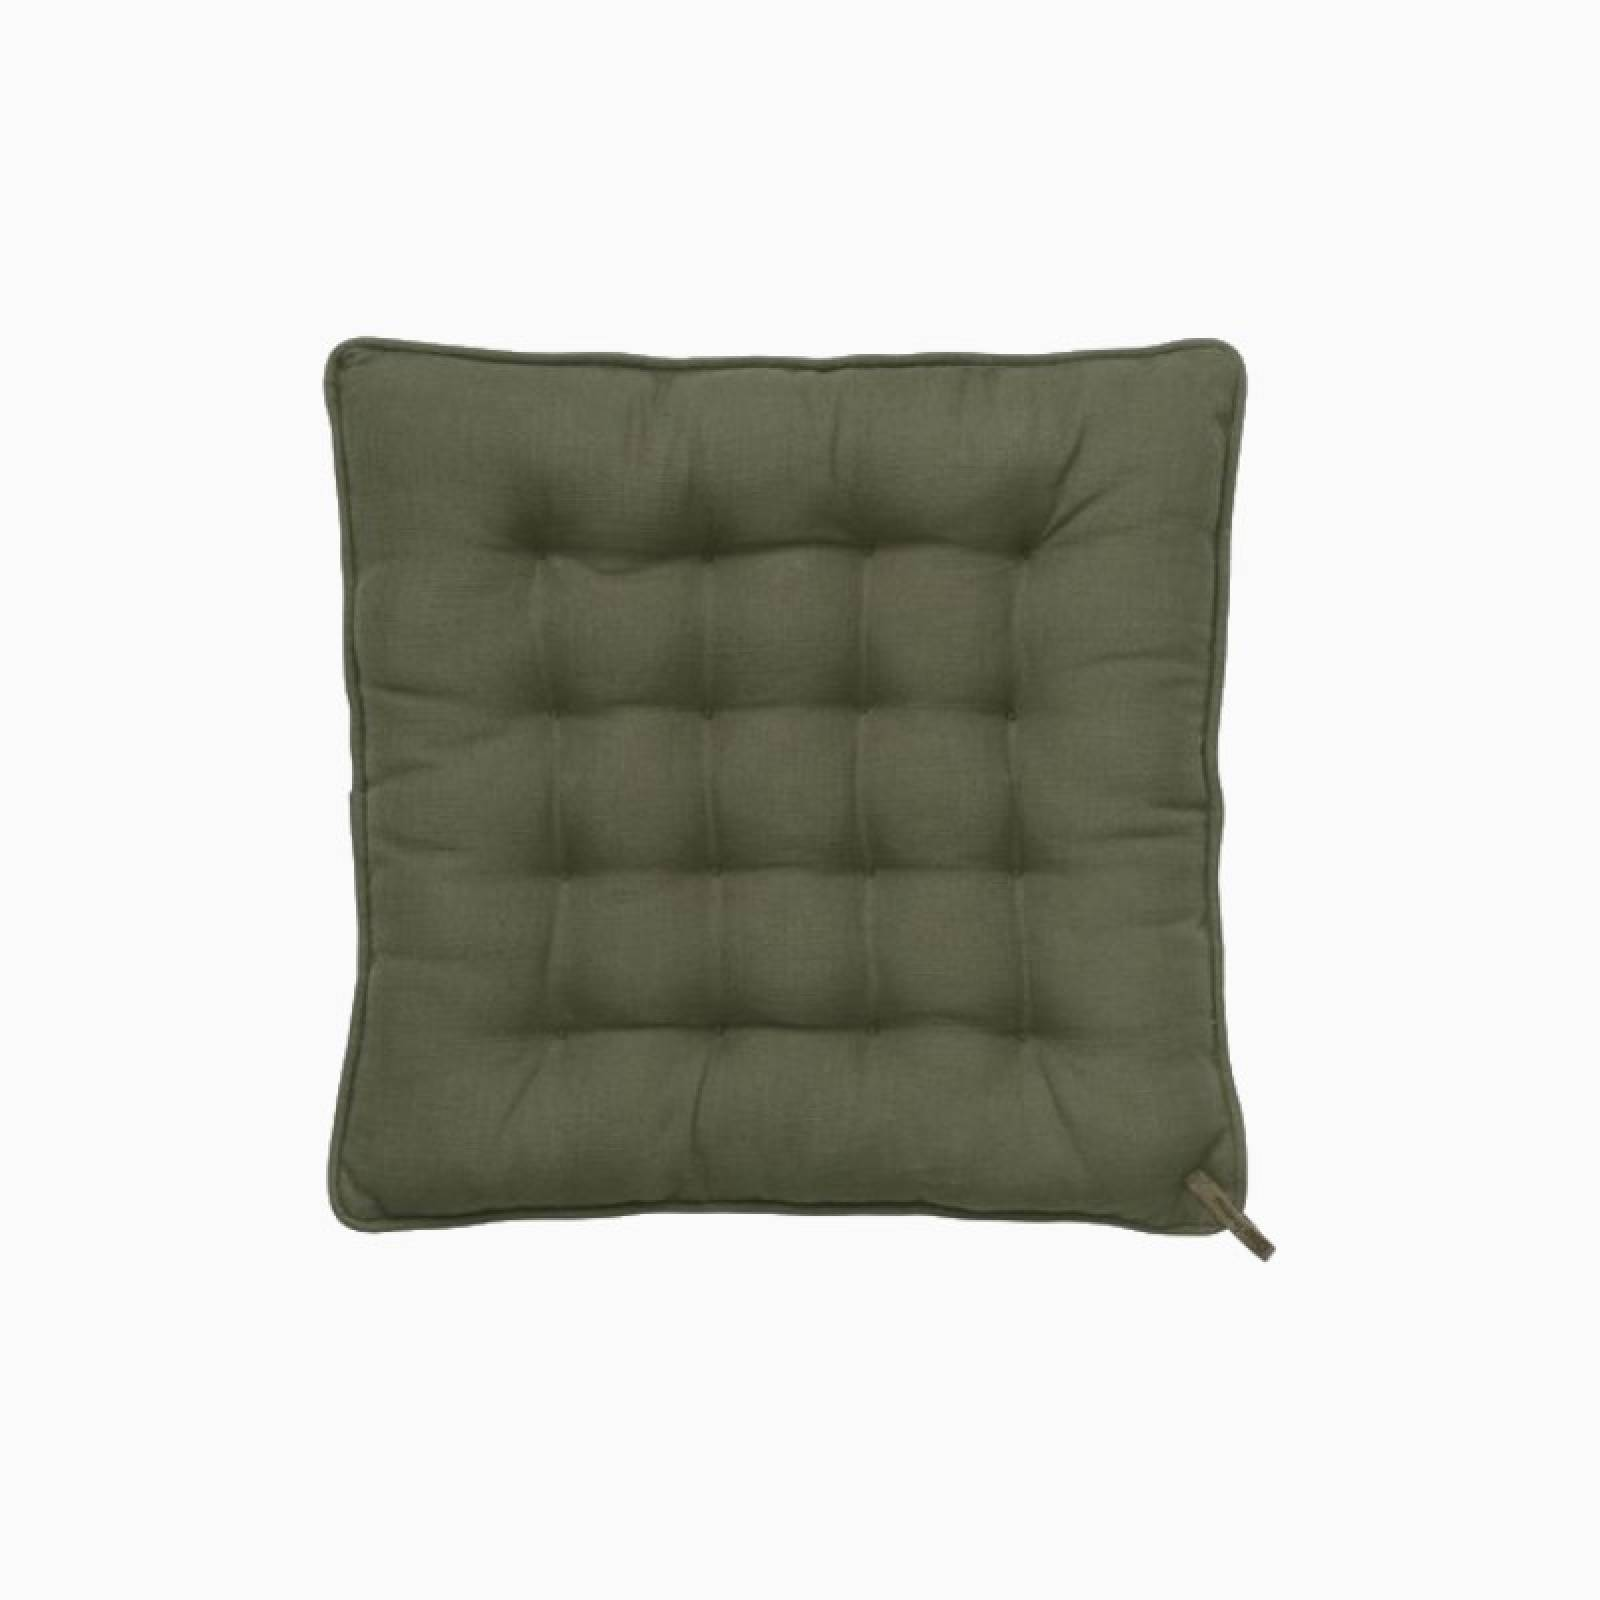 Simple Padded Seat Square Cushion In Army Green